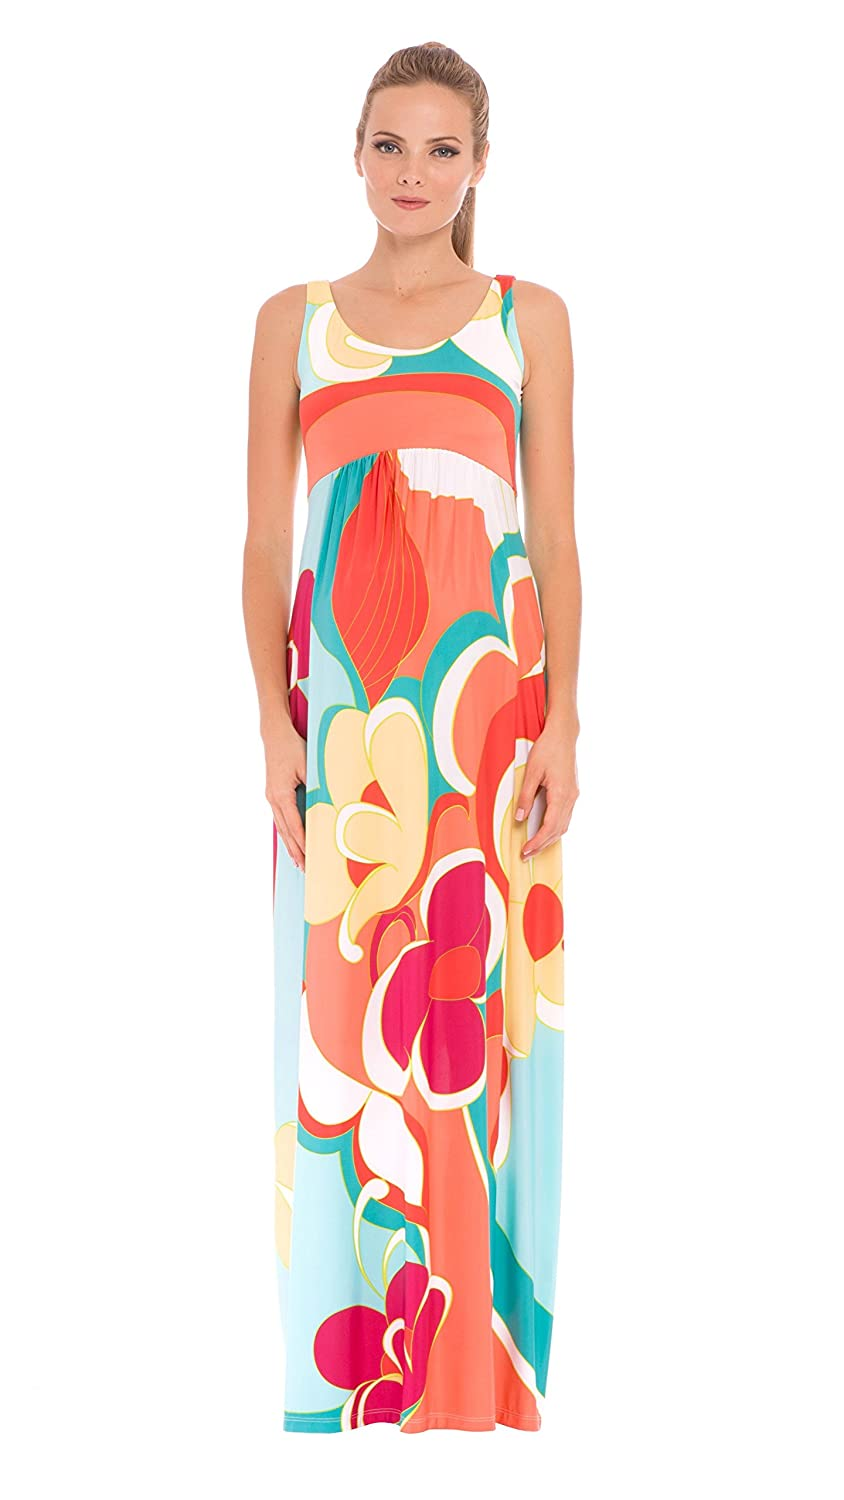 Olian Justine Maternity Maxi Dress by Olian